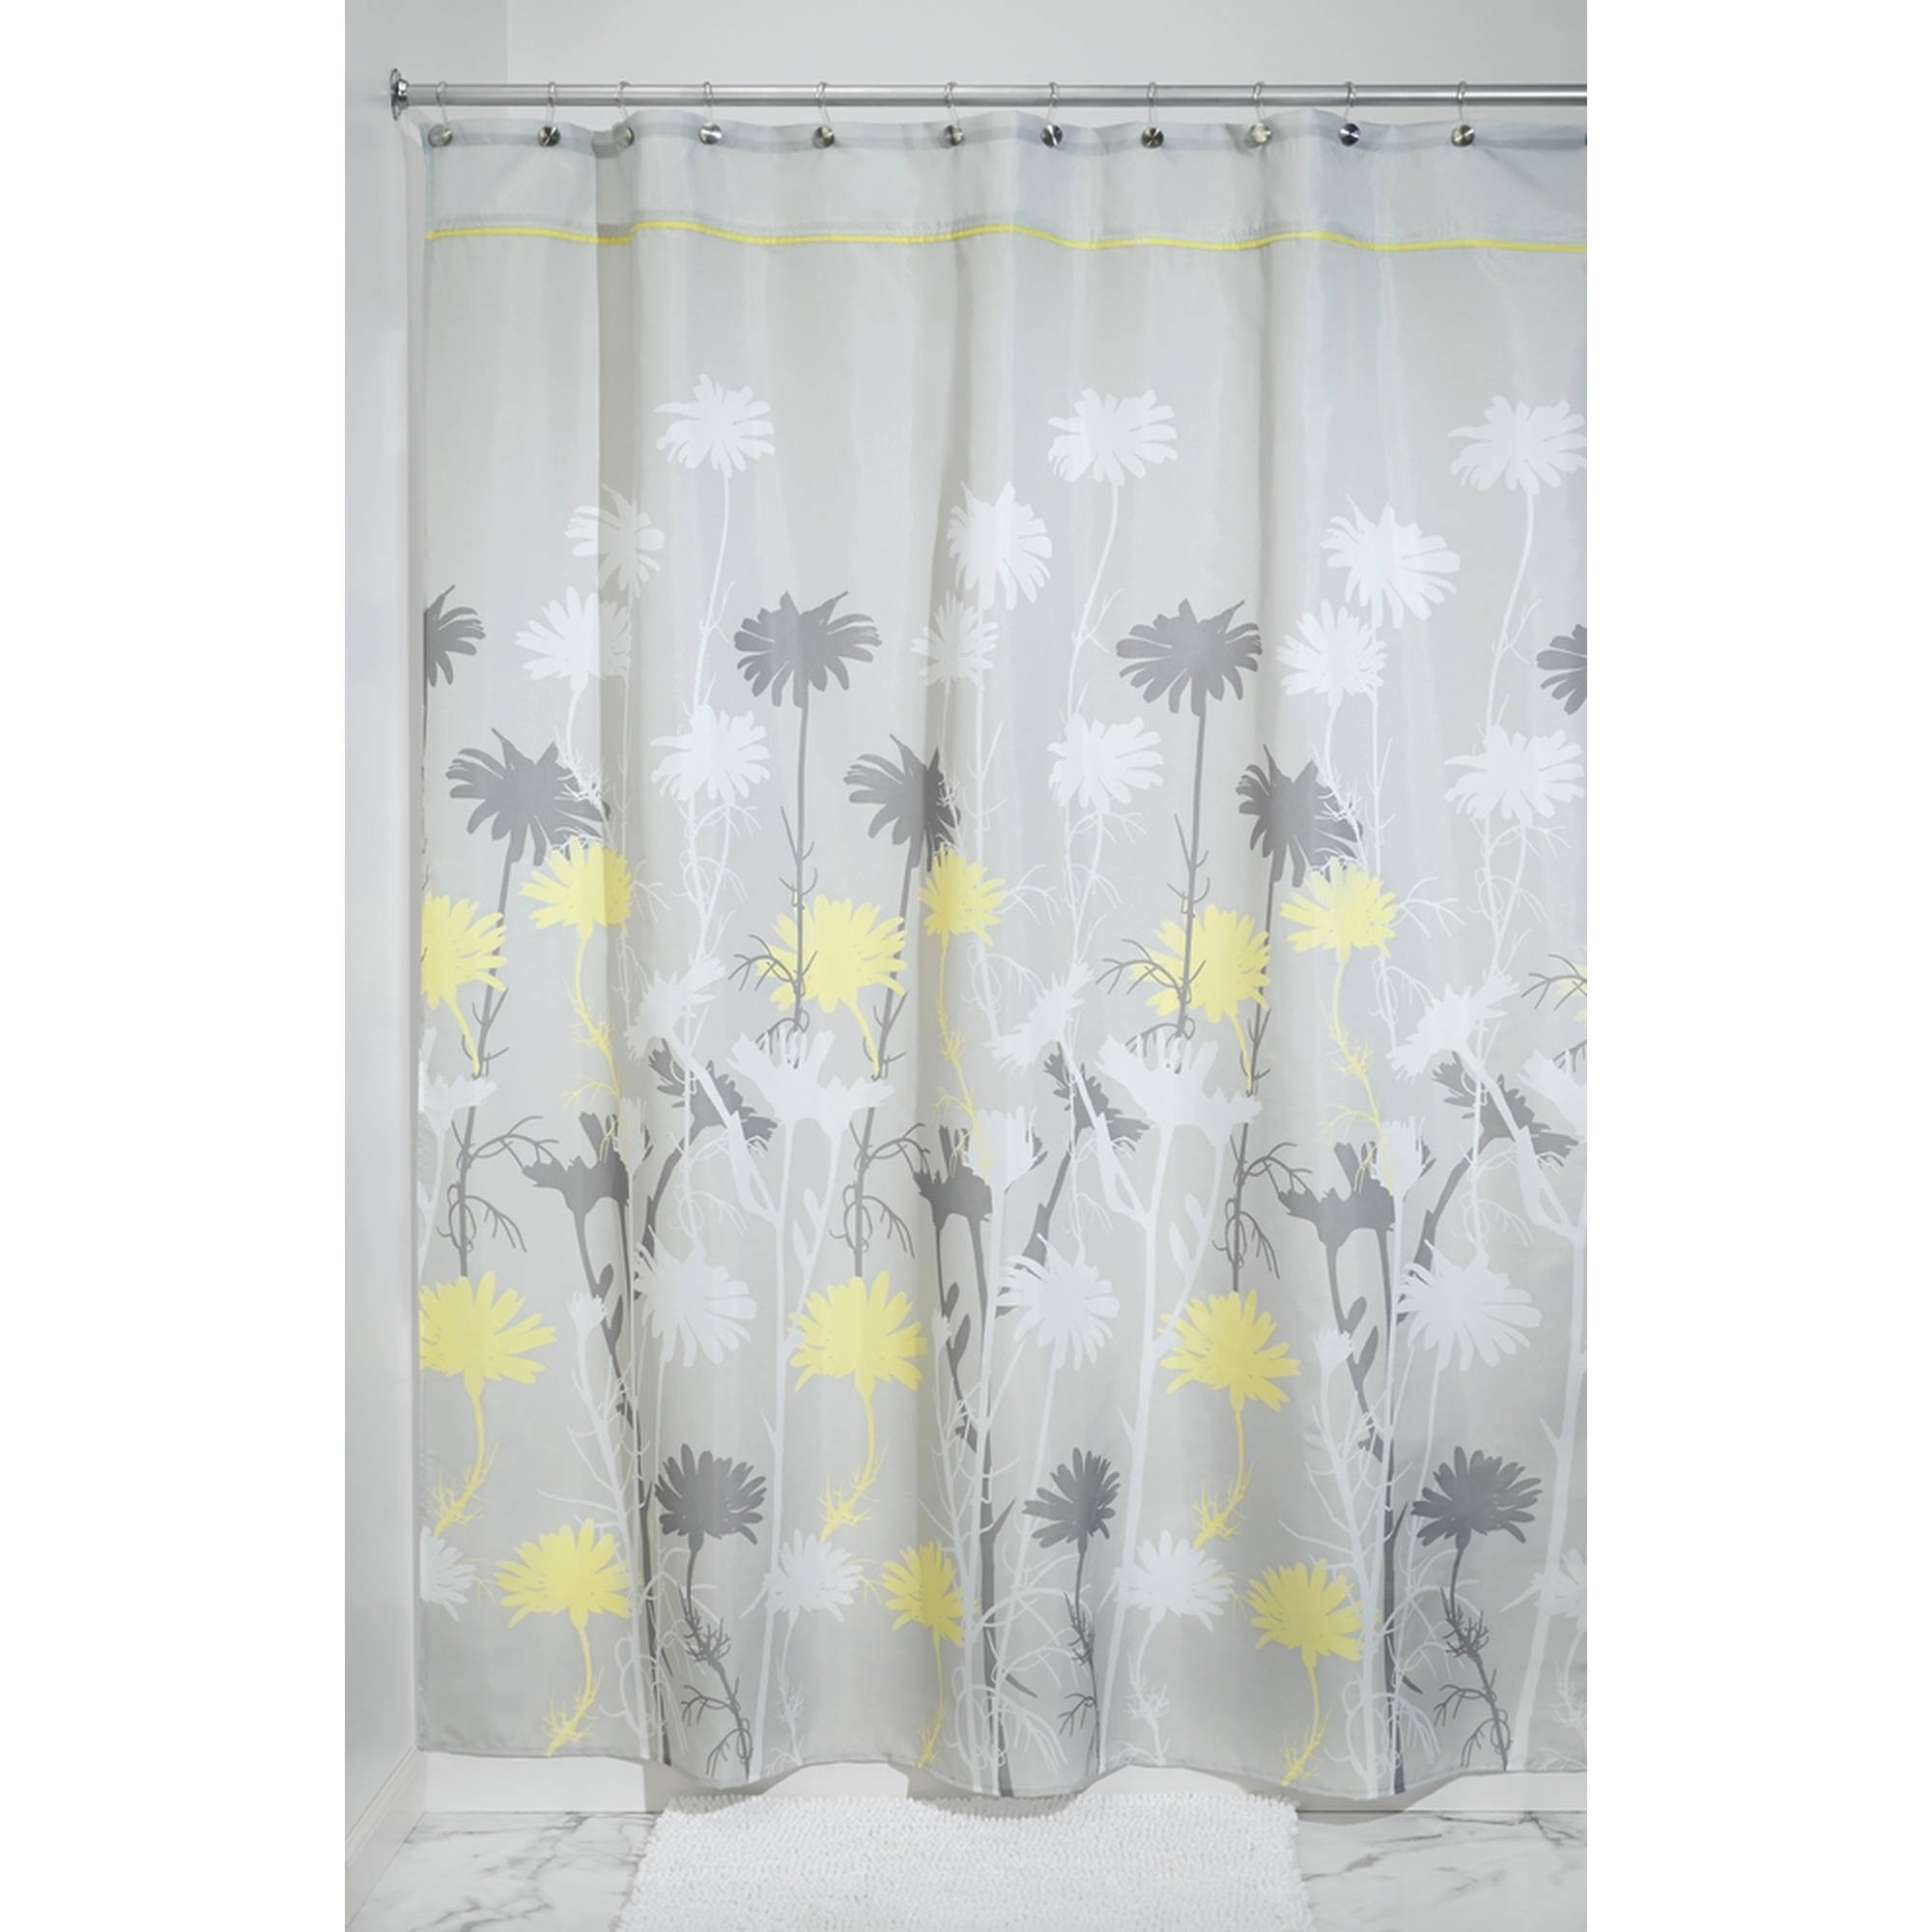 "InterDesign Daizy Fabric Shower Curtain, Stall 54"" x 78"", Gray/Yellow"